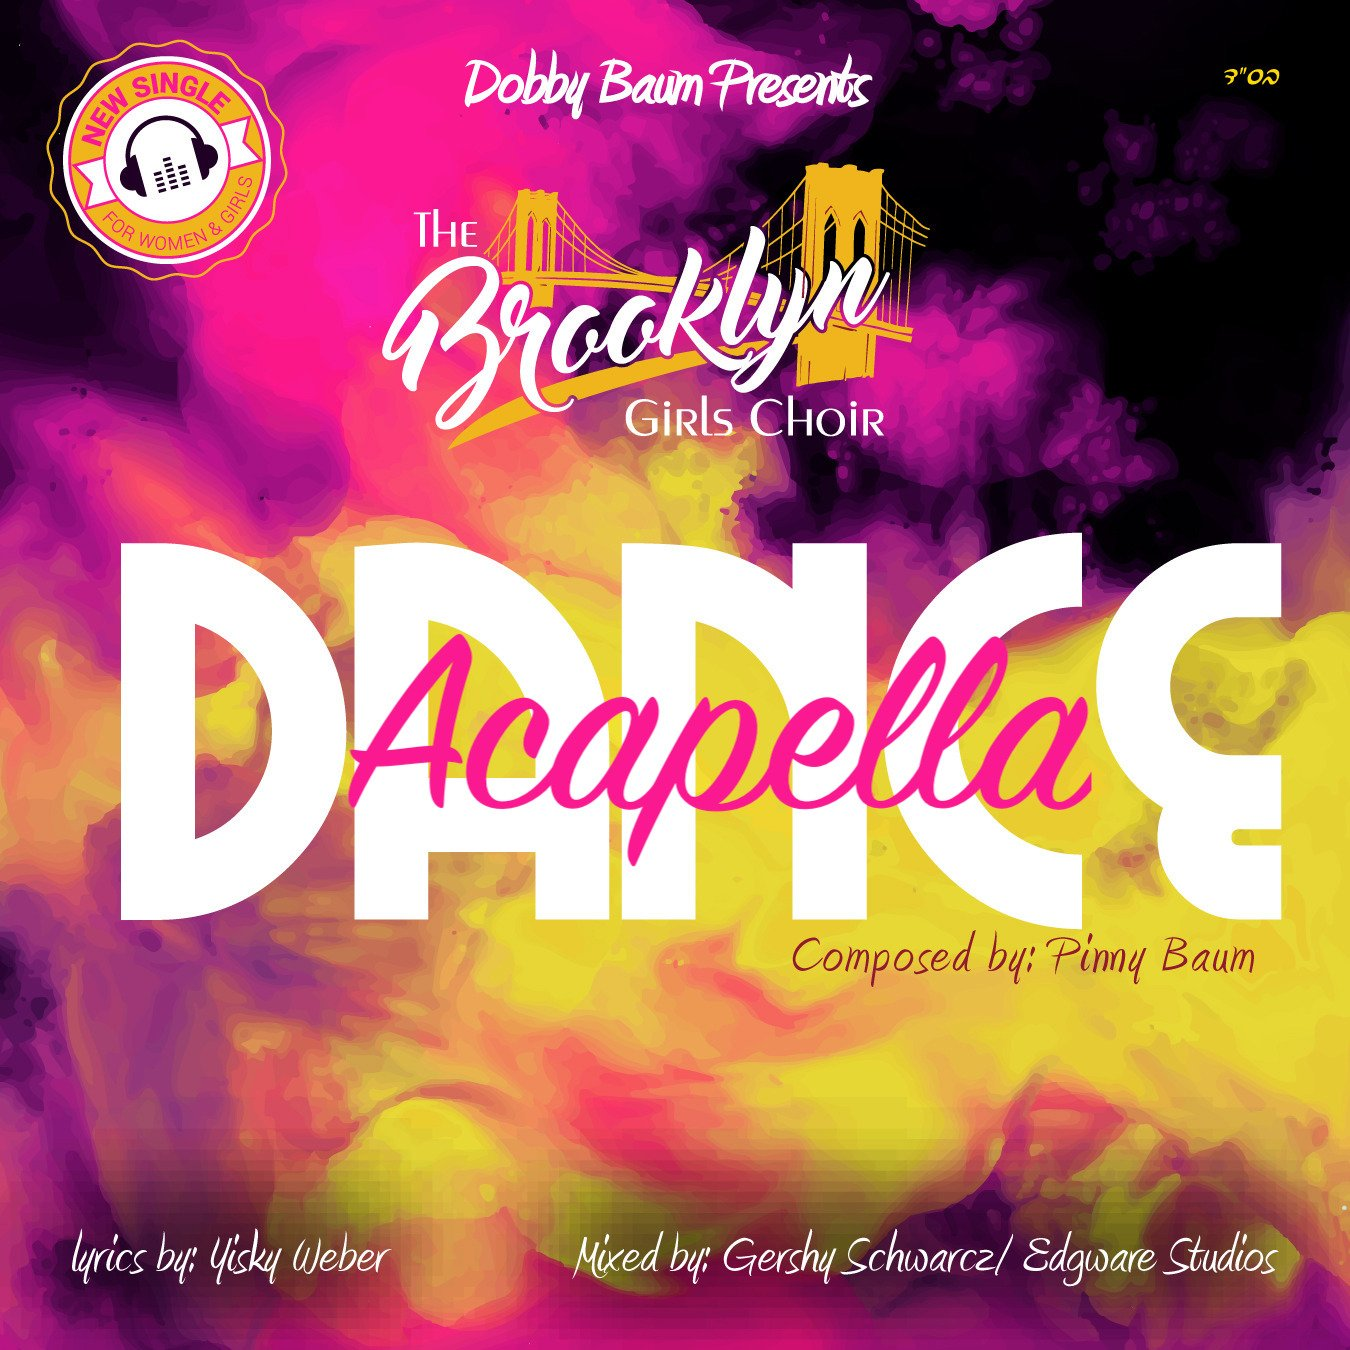 Dobby Baum & The Brooklyn Girls Choir - Dance Acapella  (Single)